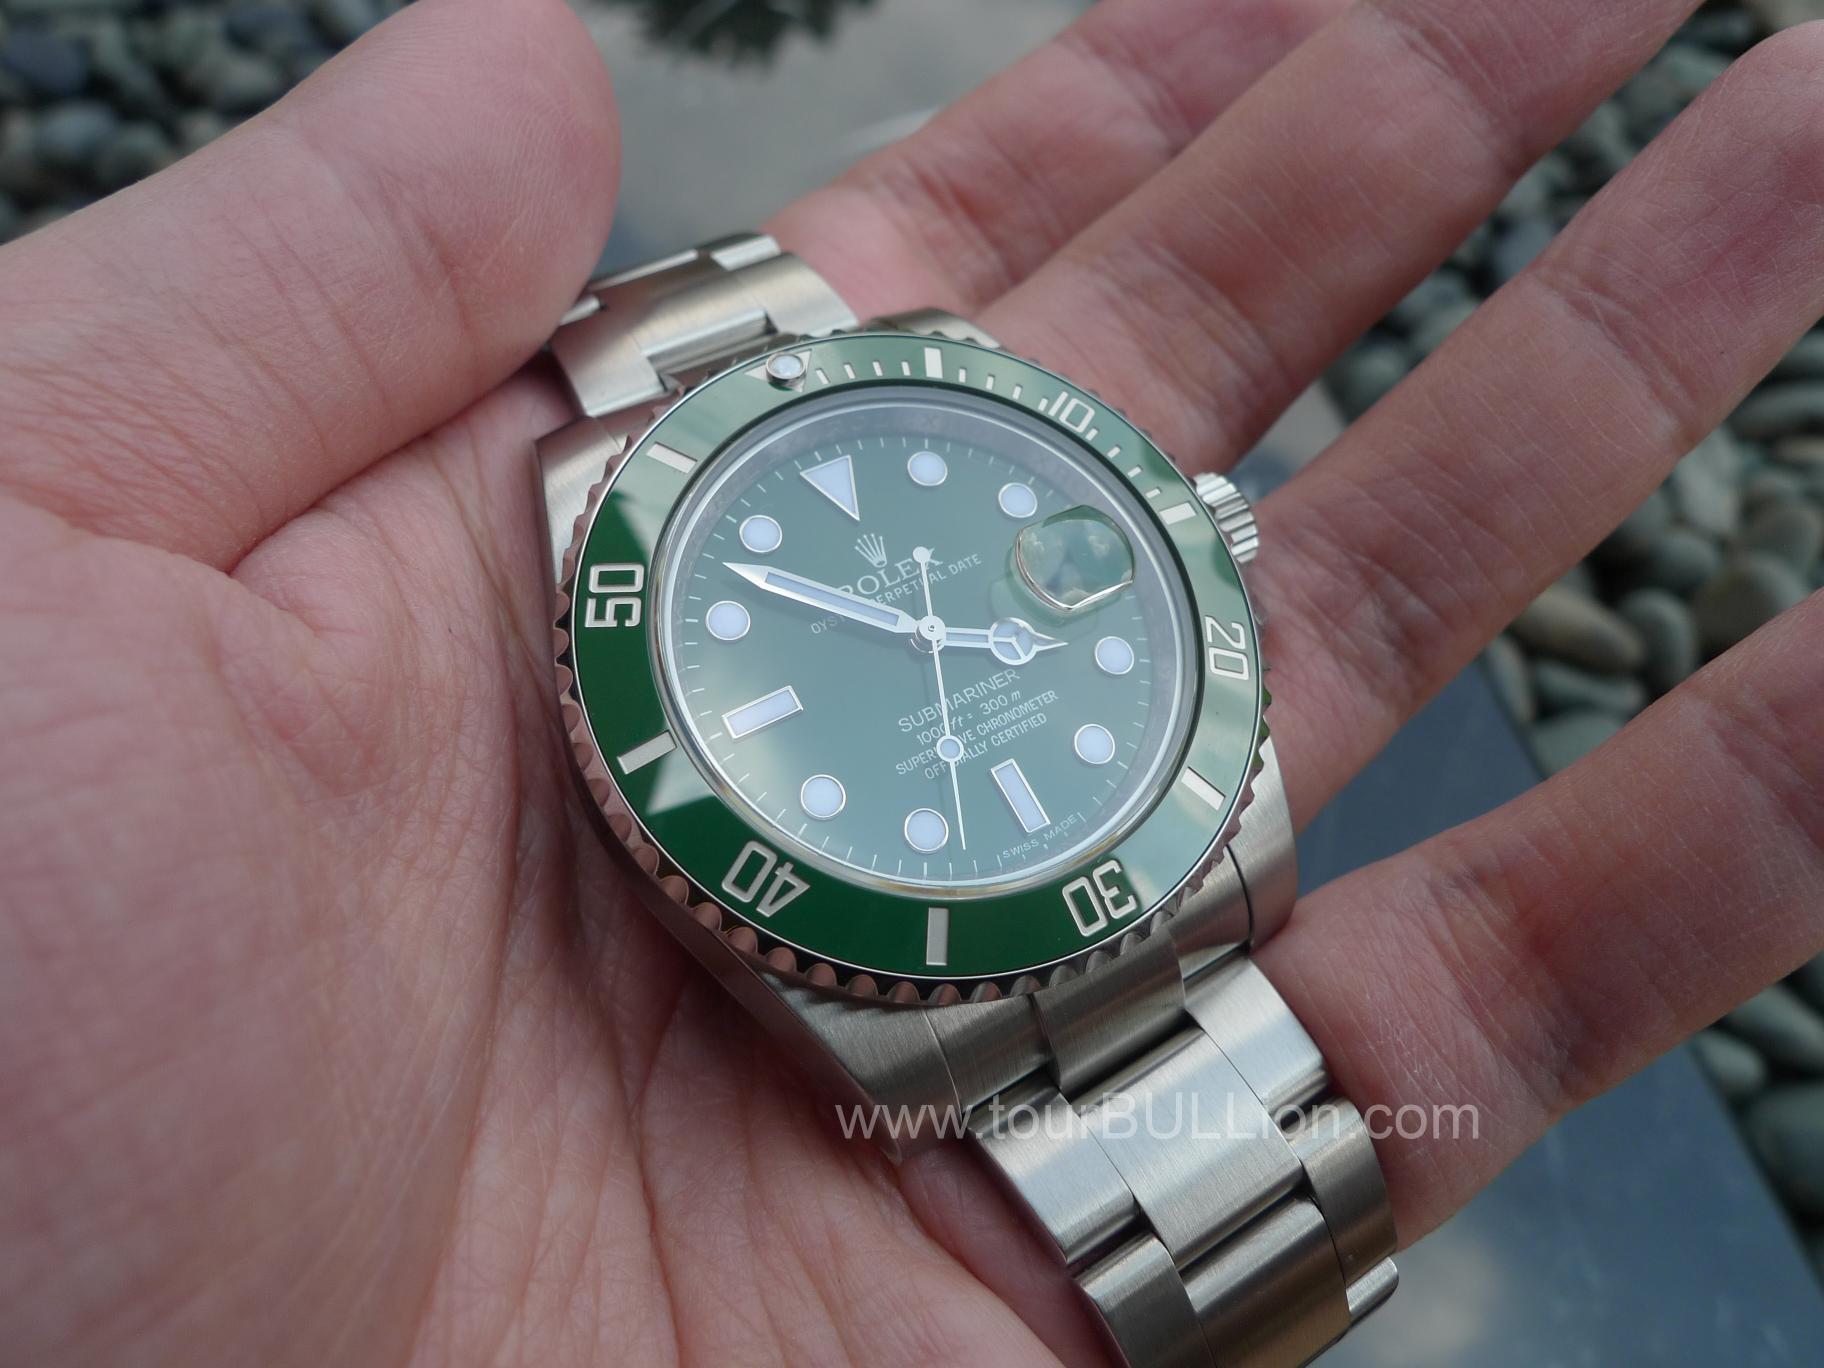 Rolex Submariner Green The rolex submariner greenRolex Submariner Green On Wrist